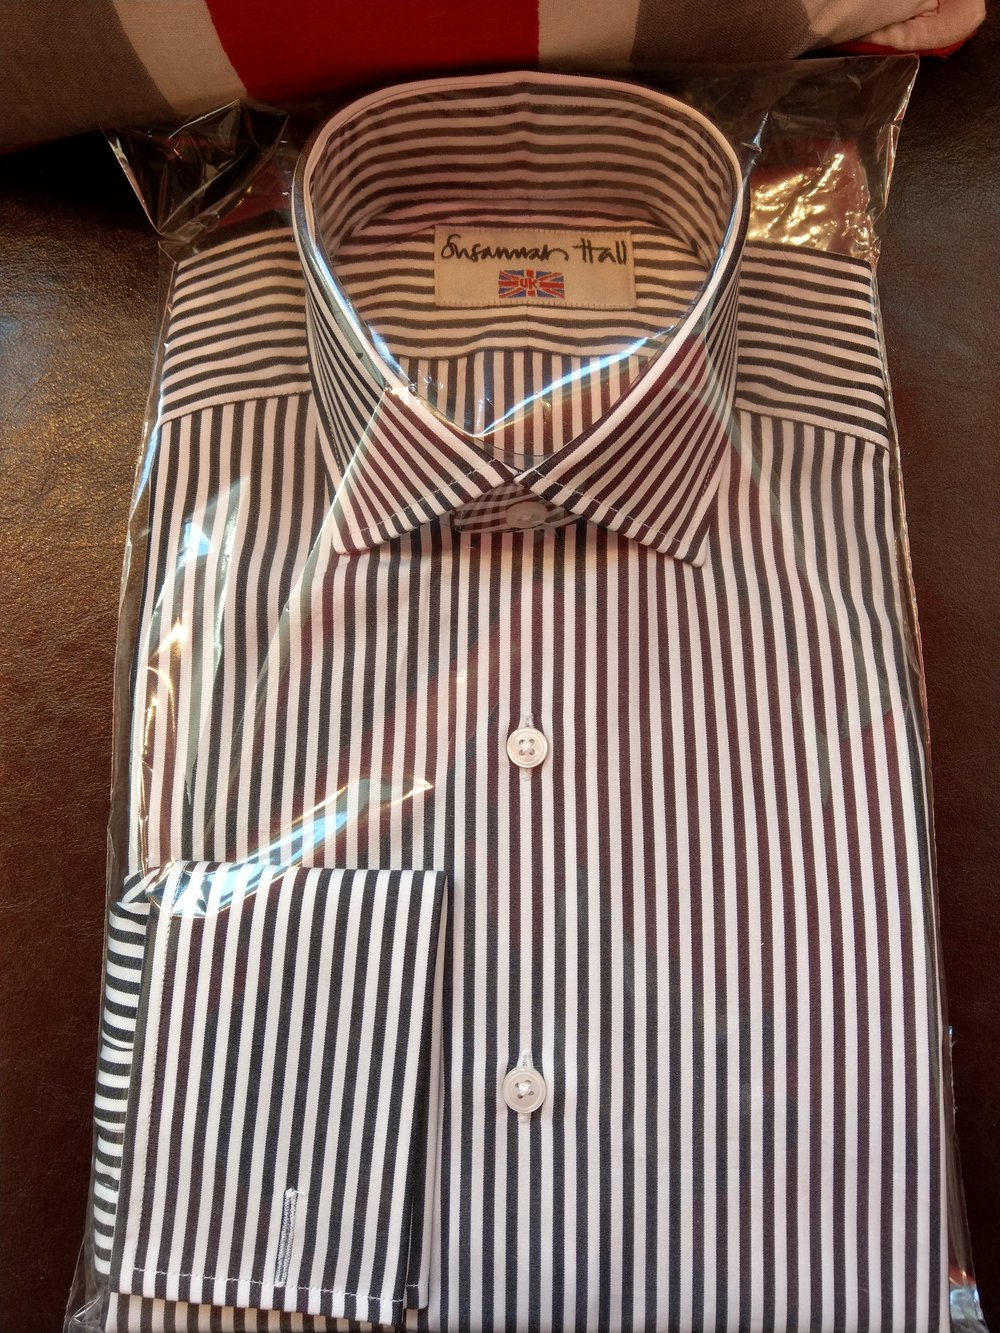 black-white-stripe-bespoke-shirt-cotton-acorn-fabric-bristish-uk-made-susannah-hall.jpg